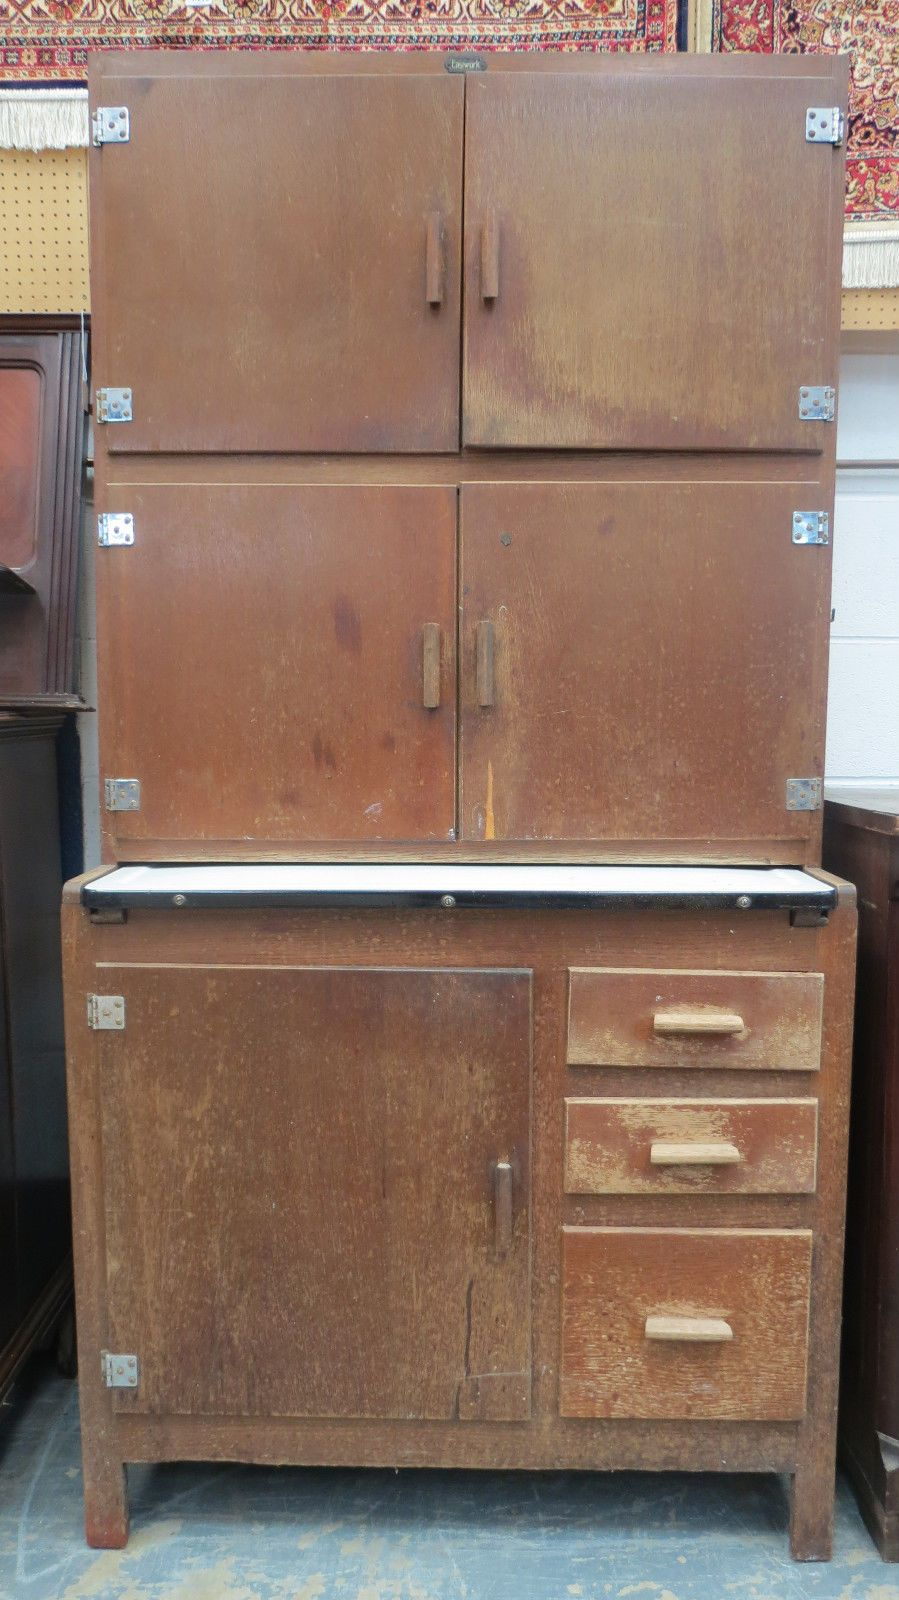 1930s Easiwork Model 420 Stand Alone Utility Kitchen Cabinet | eBay ...